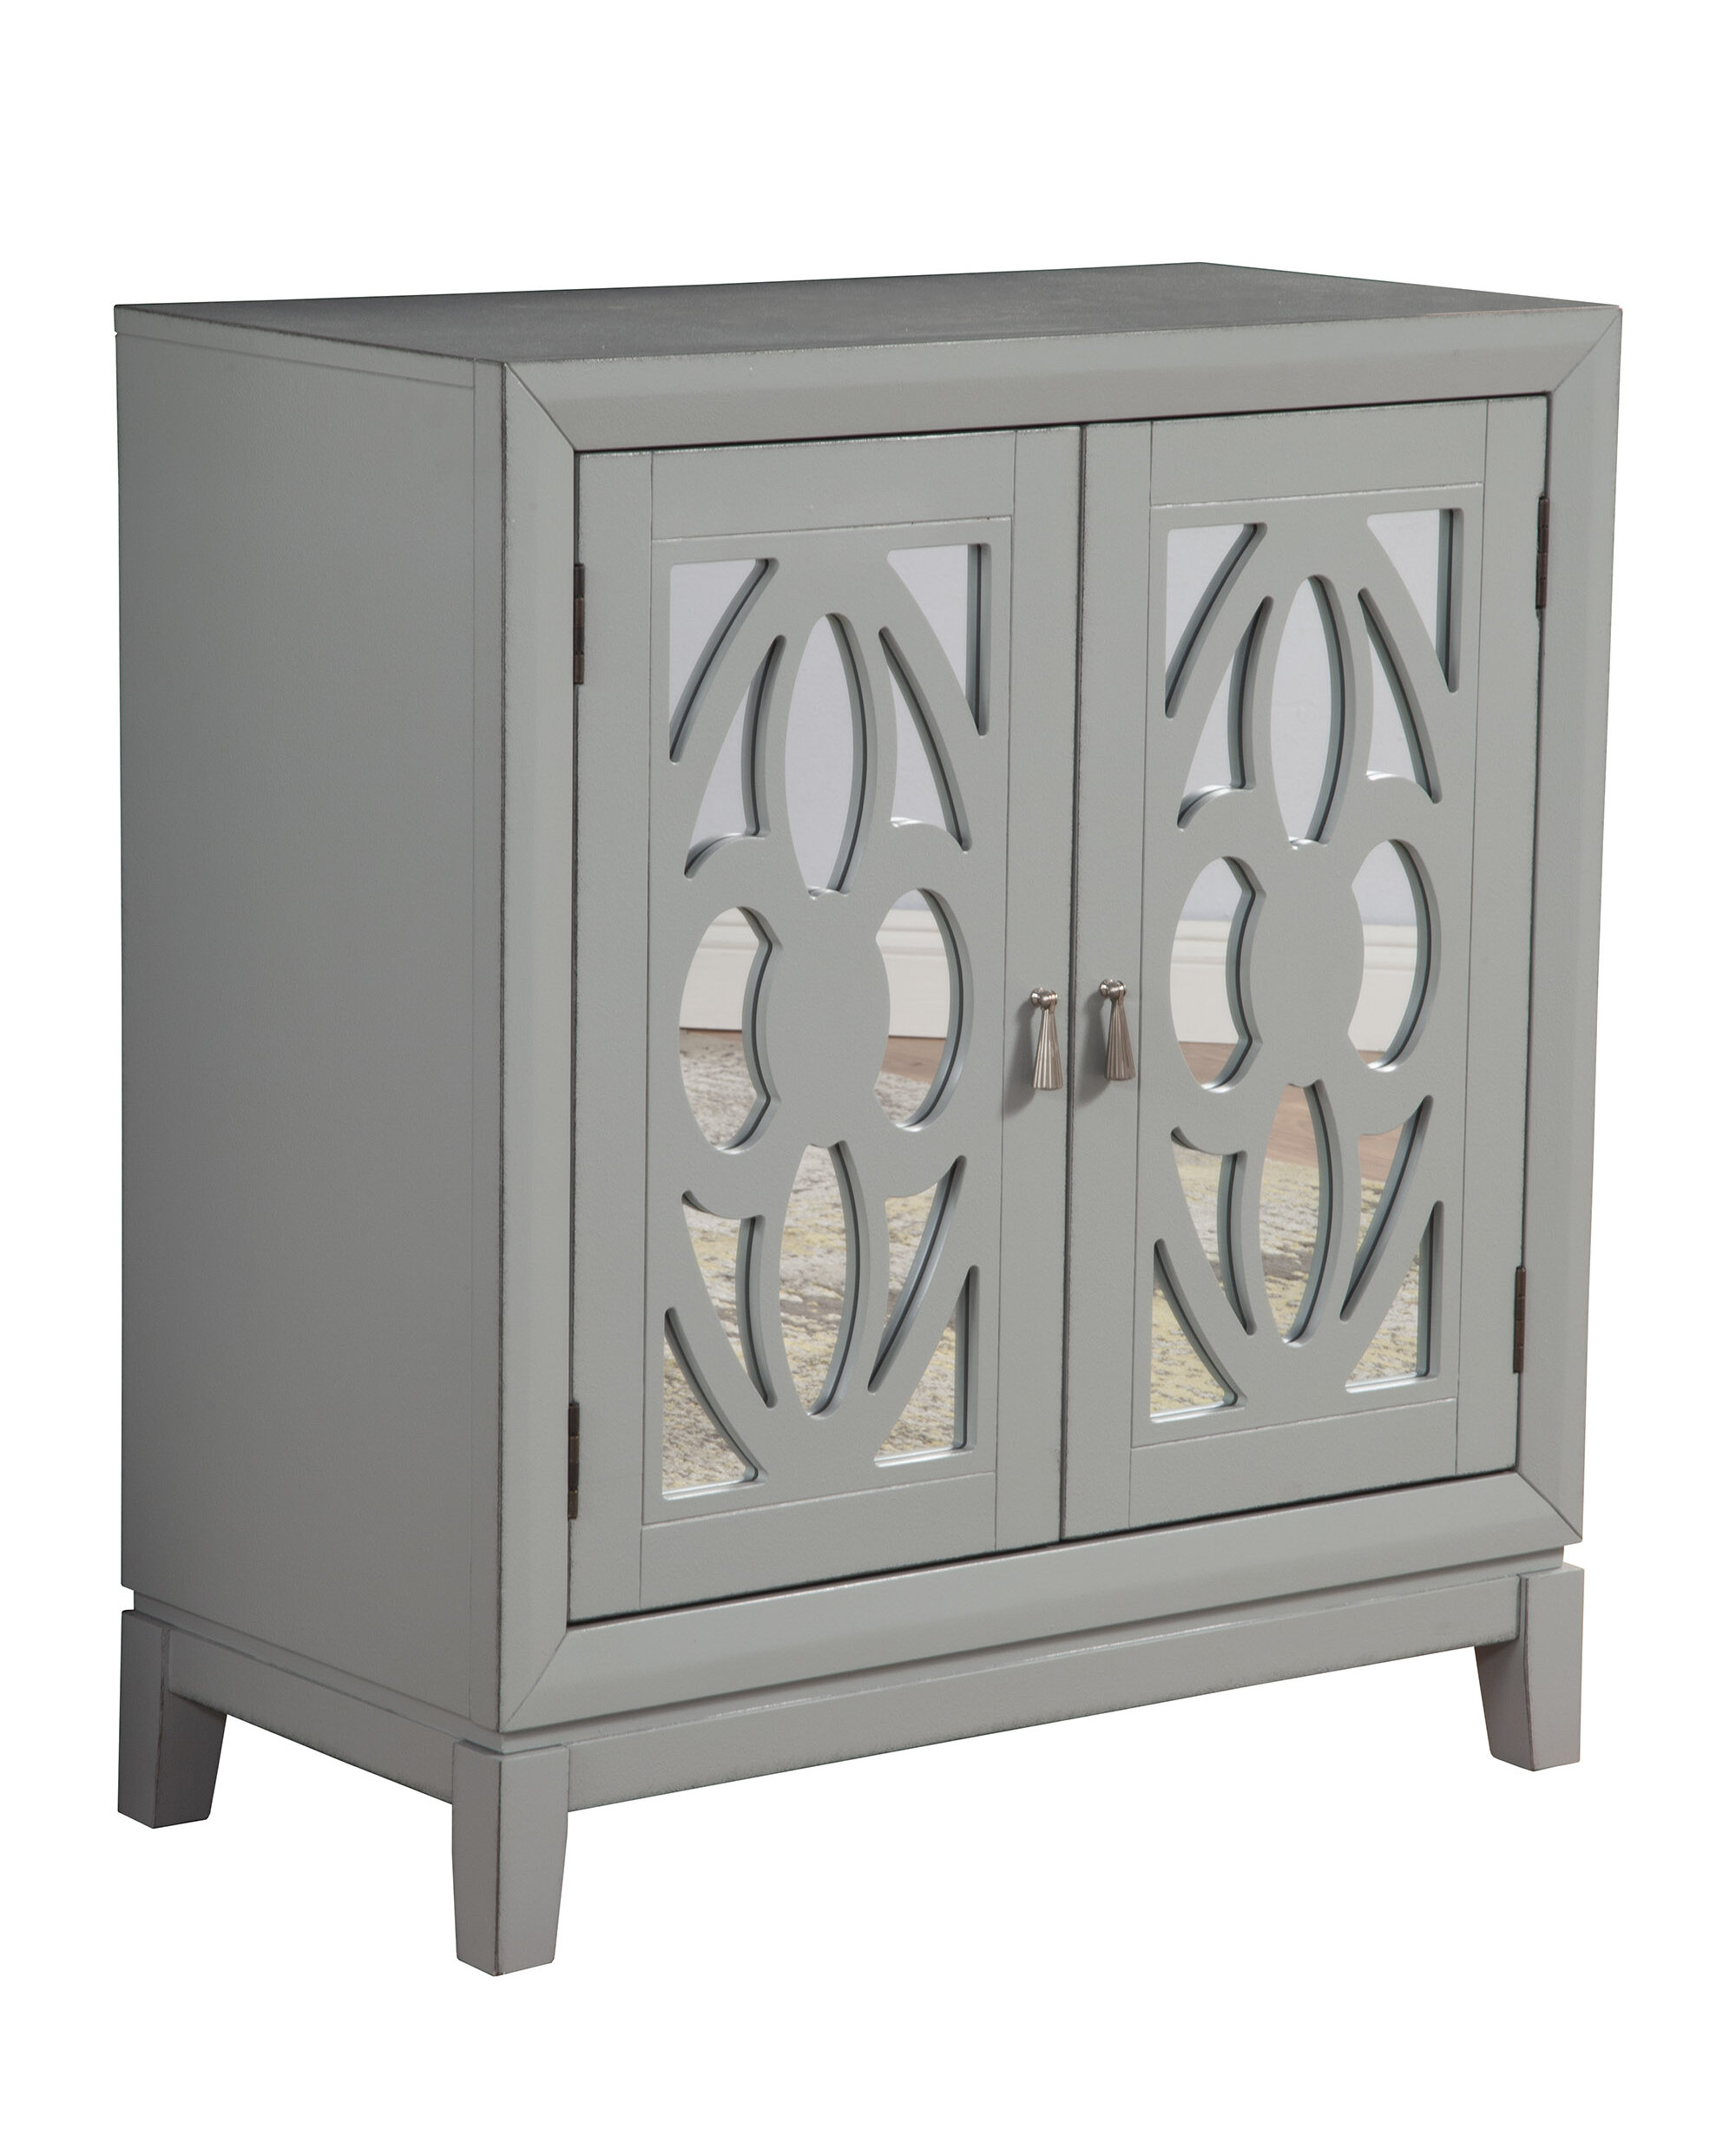 1 2 Cabinets Mirrored Cabinets Chests You Ll Love In 2021 Wayfair